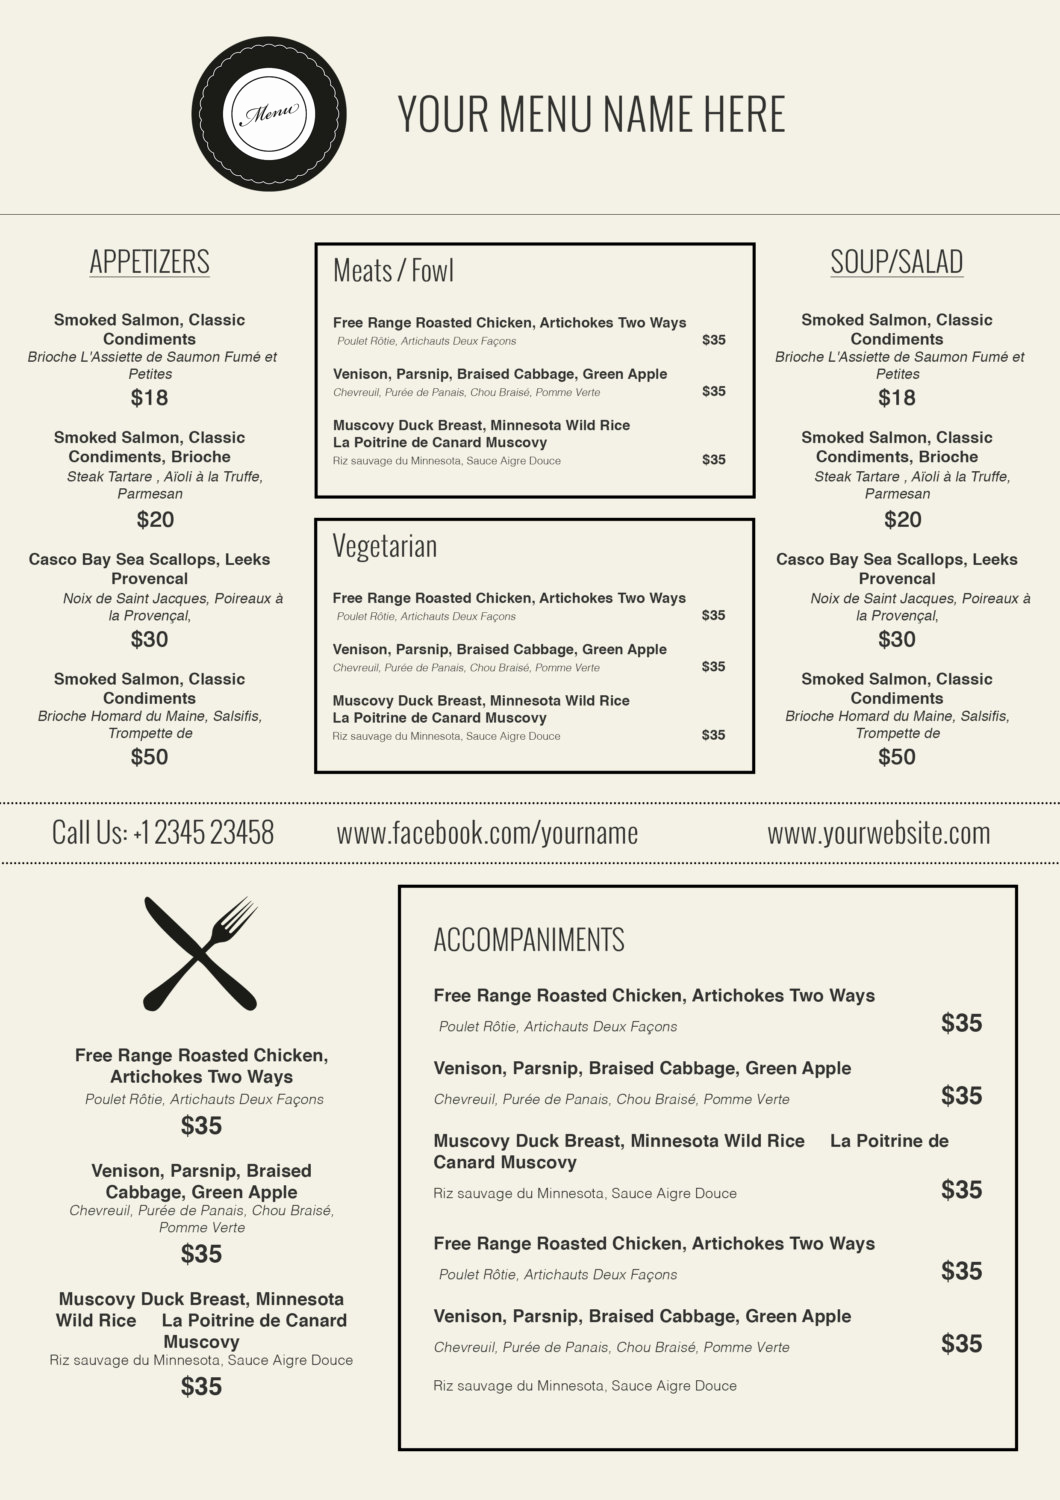 Free Menu Template Microsoft Word Awesome Design & Templates Menu Templates Wedding Menu Food